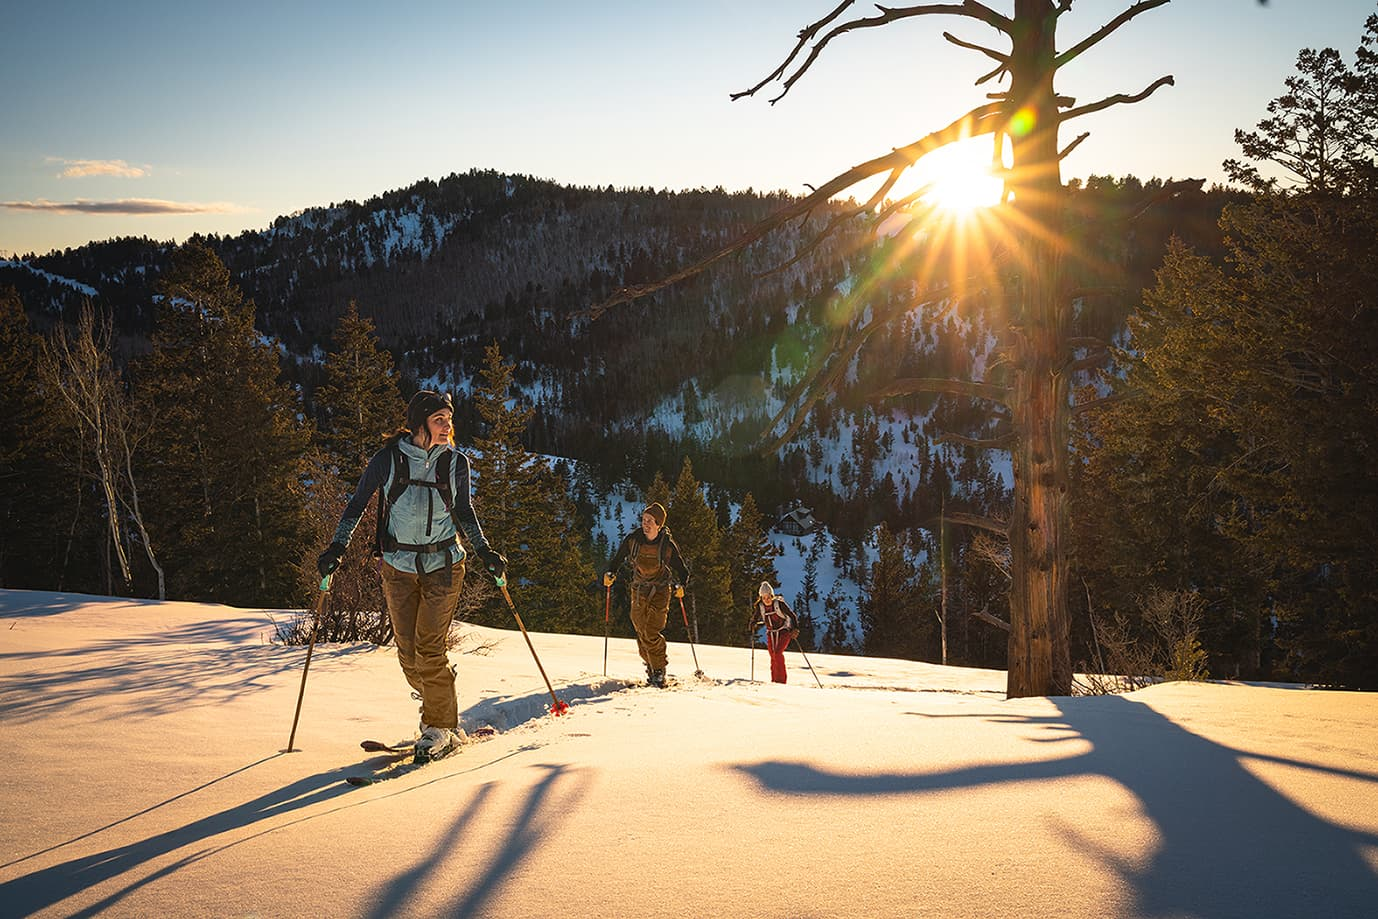 ski touring in the sub-alpine at day break